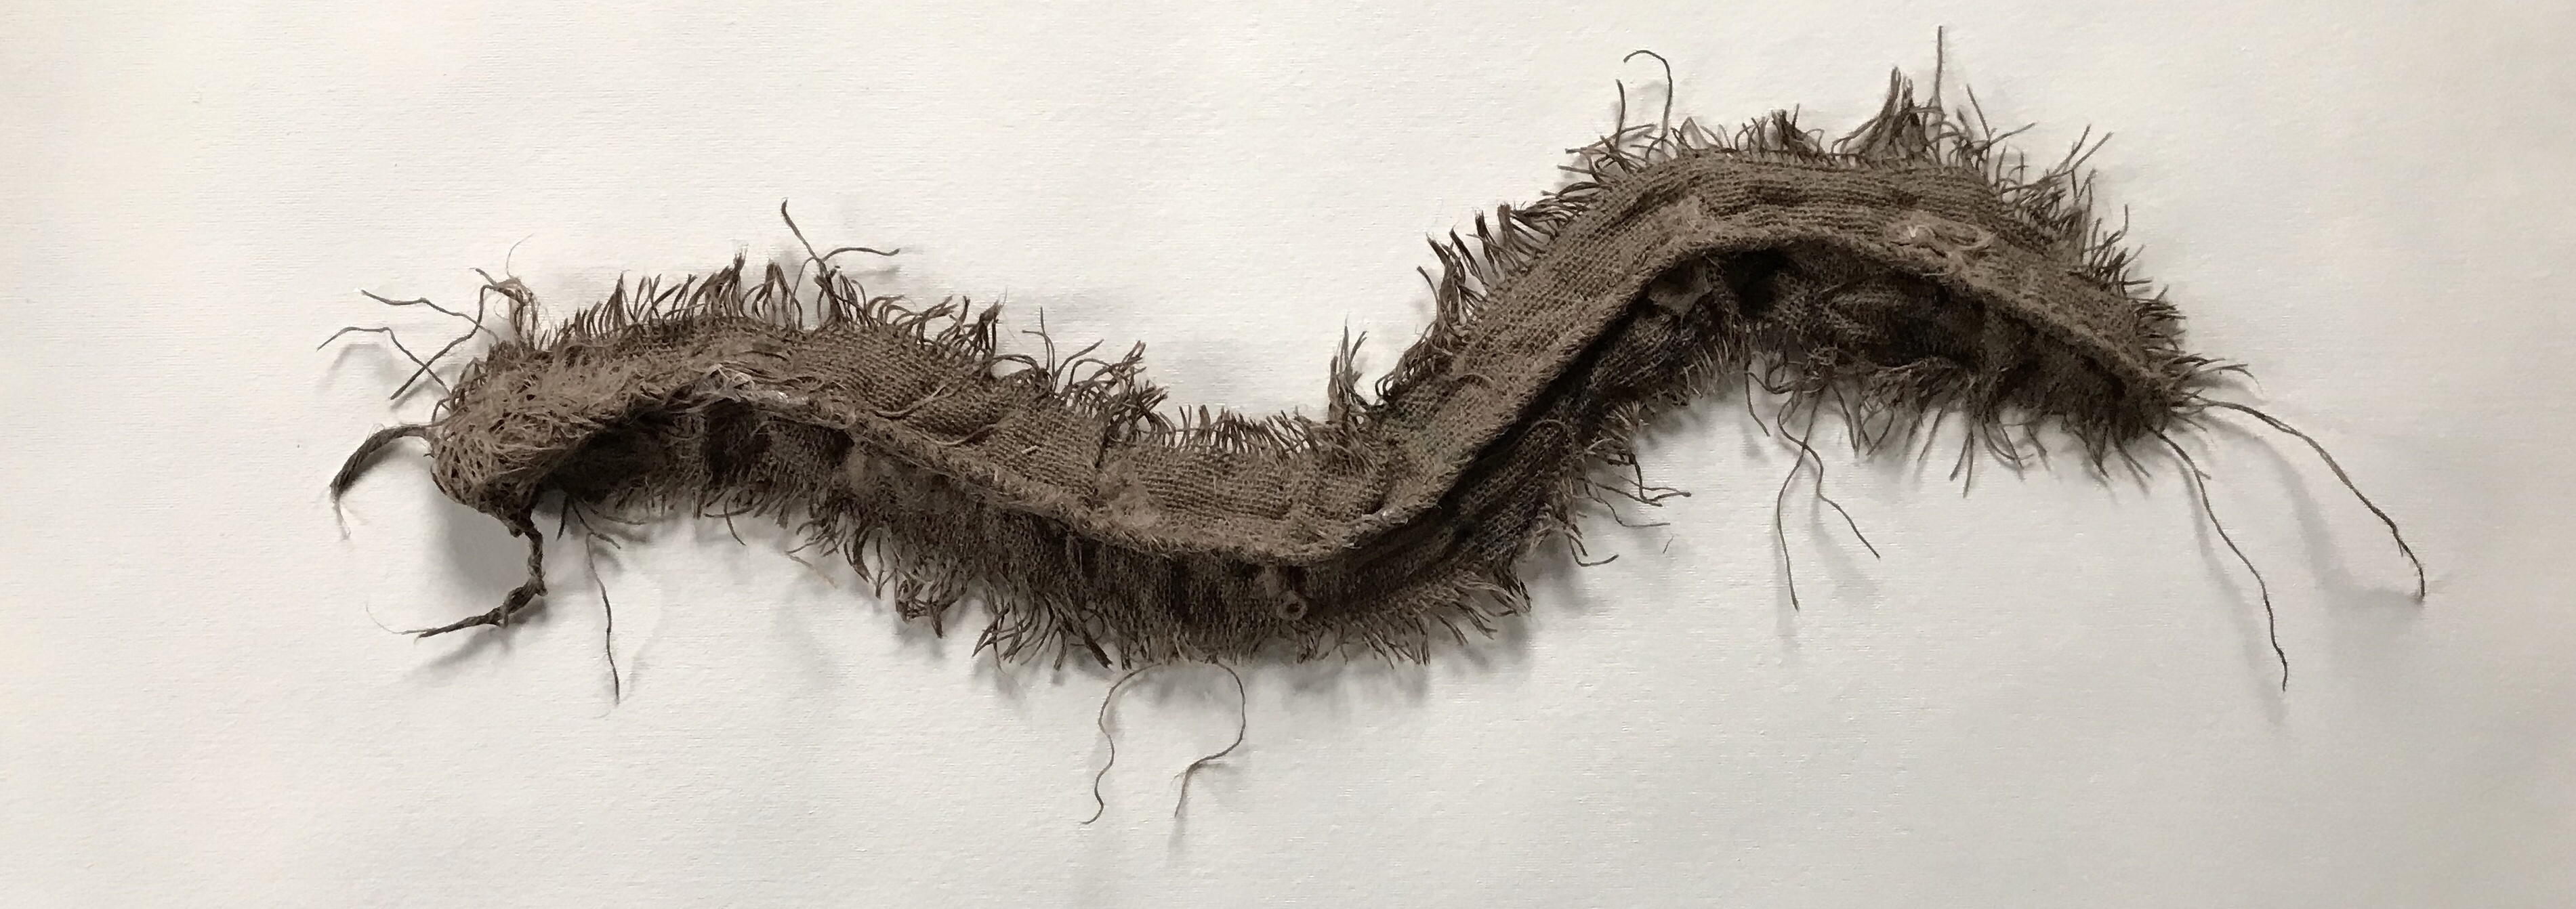 a fabric art piece made from sackcloth that resembles a giant centipede